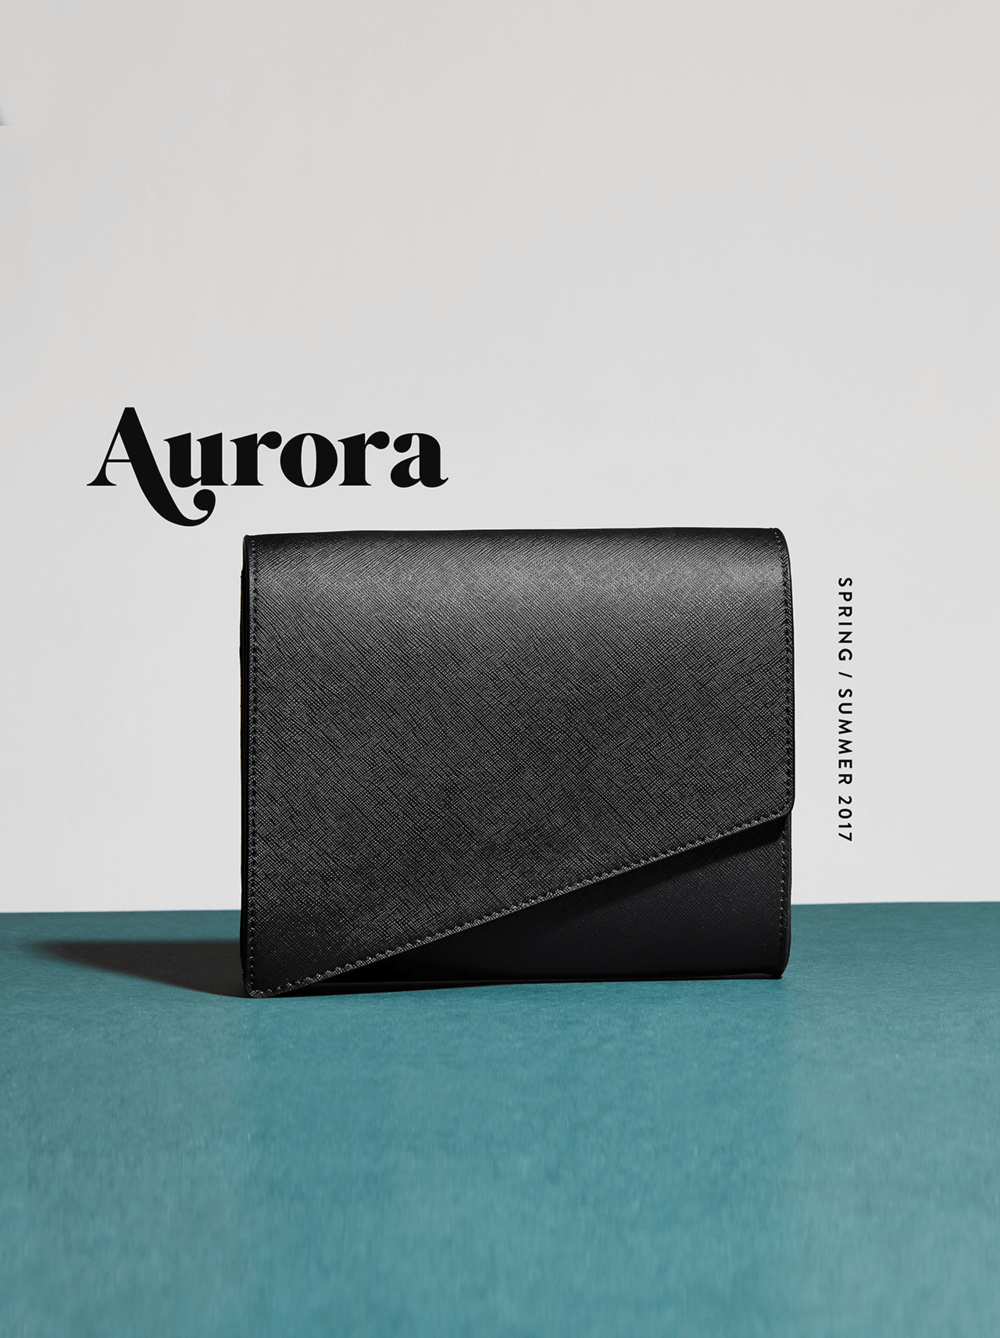 The Aurora Store<strong>Read More</strong>